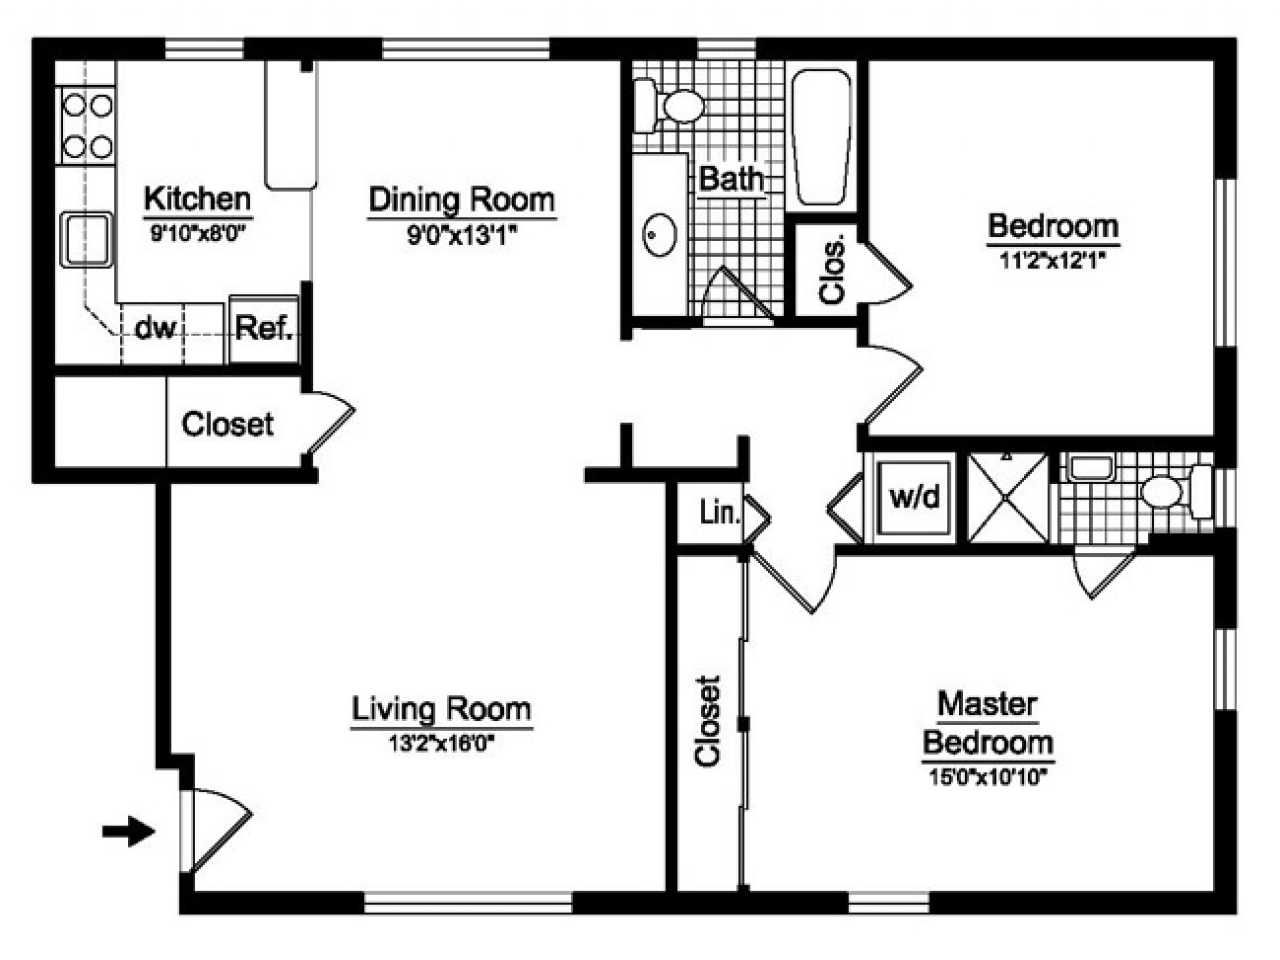 2 Bedroom 1 Bath Open Floor Plans Savae Org